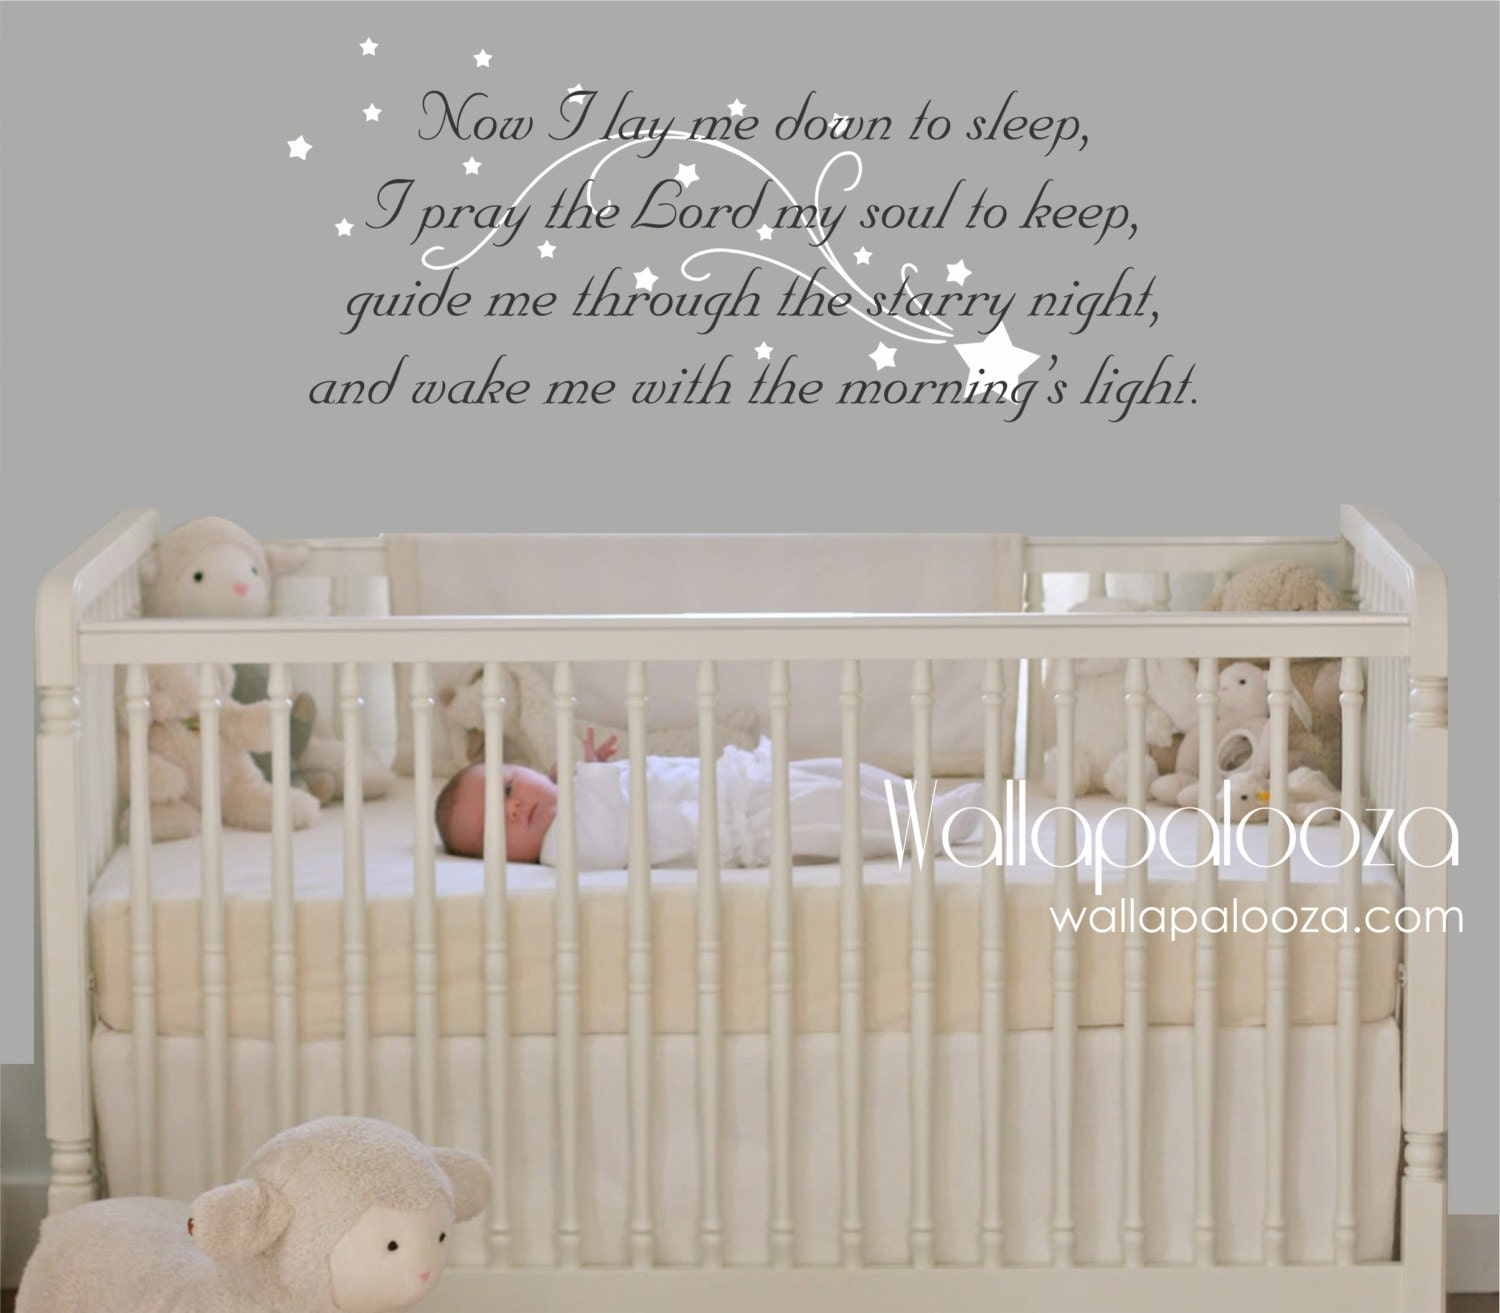 Now I lay me down to sleep wall decal prayer wall decal